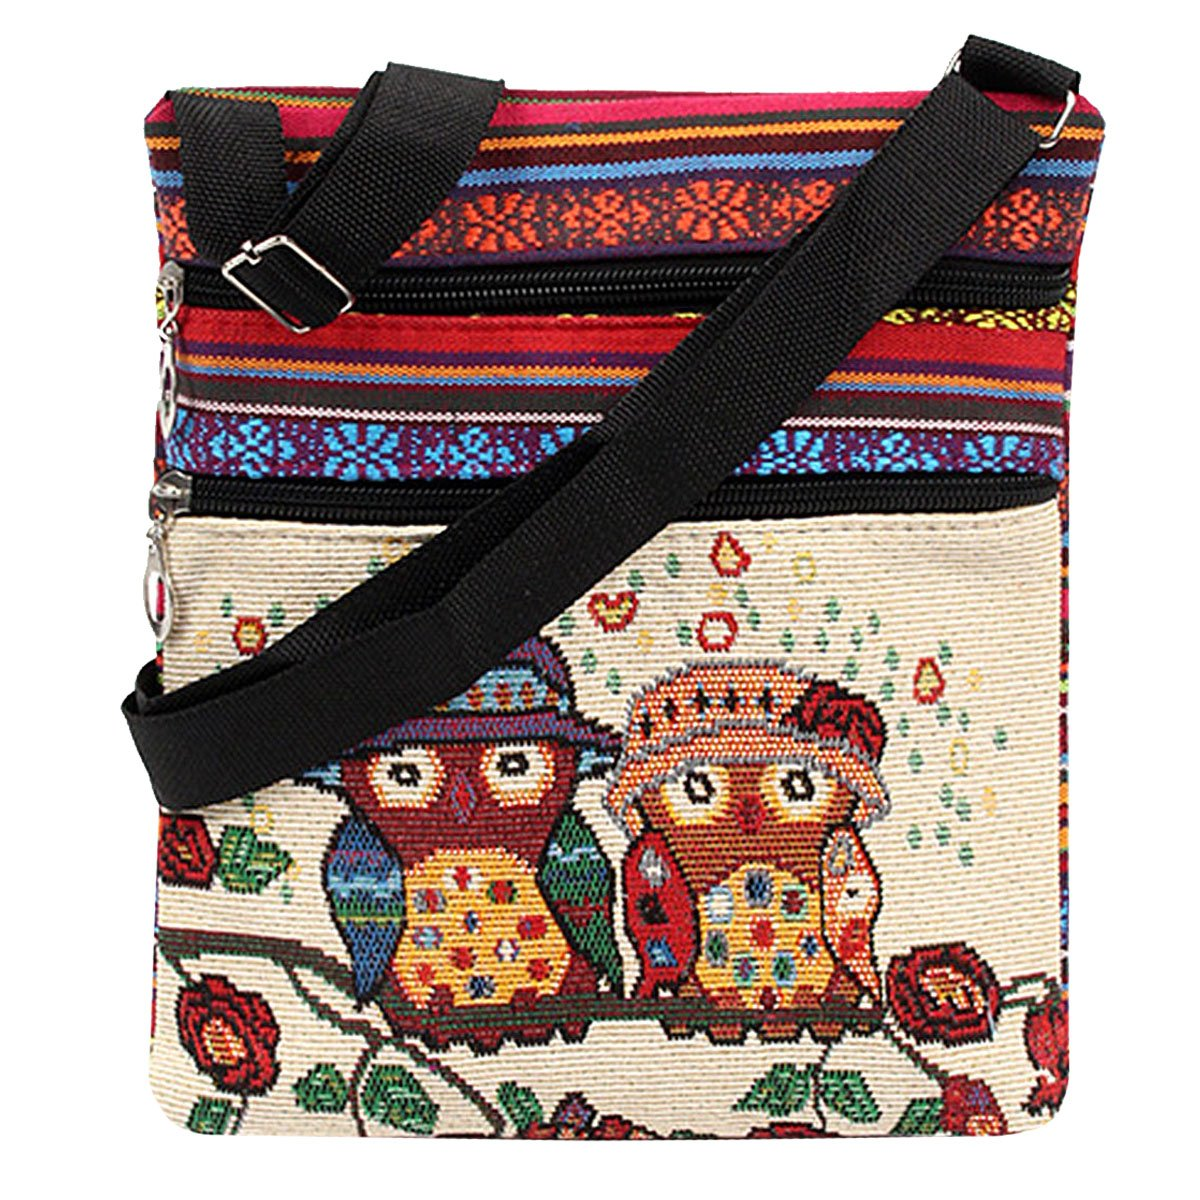 LA HAUTE Women Canvas Shoulder Bags Ethnic style Embroidered Owl Design Crossbody Bags Travel Shopping Bags